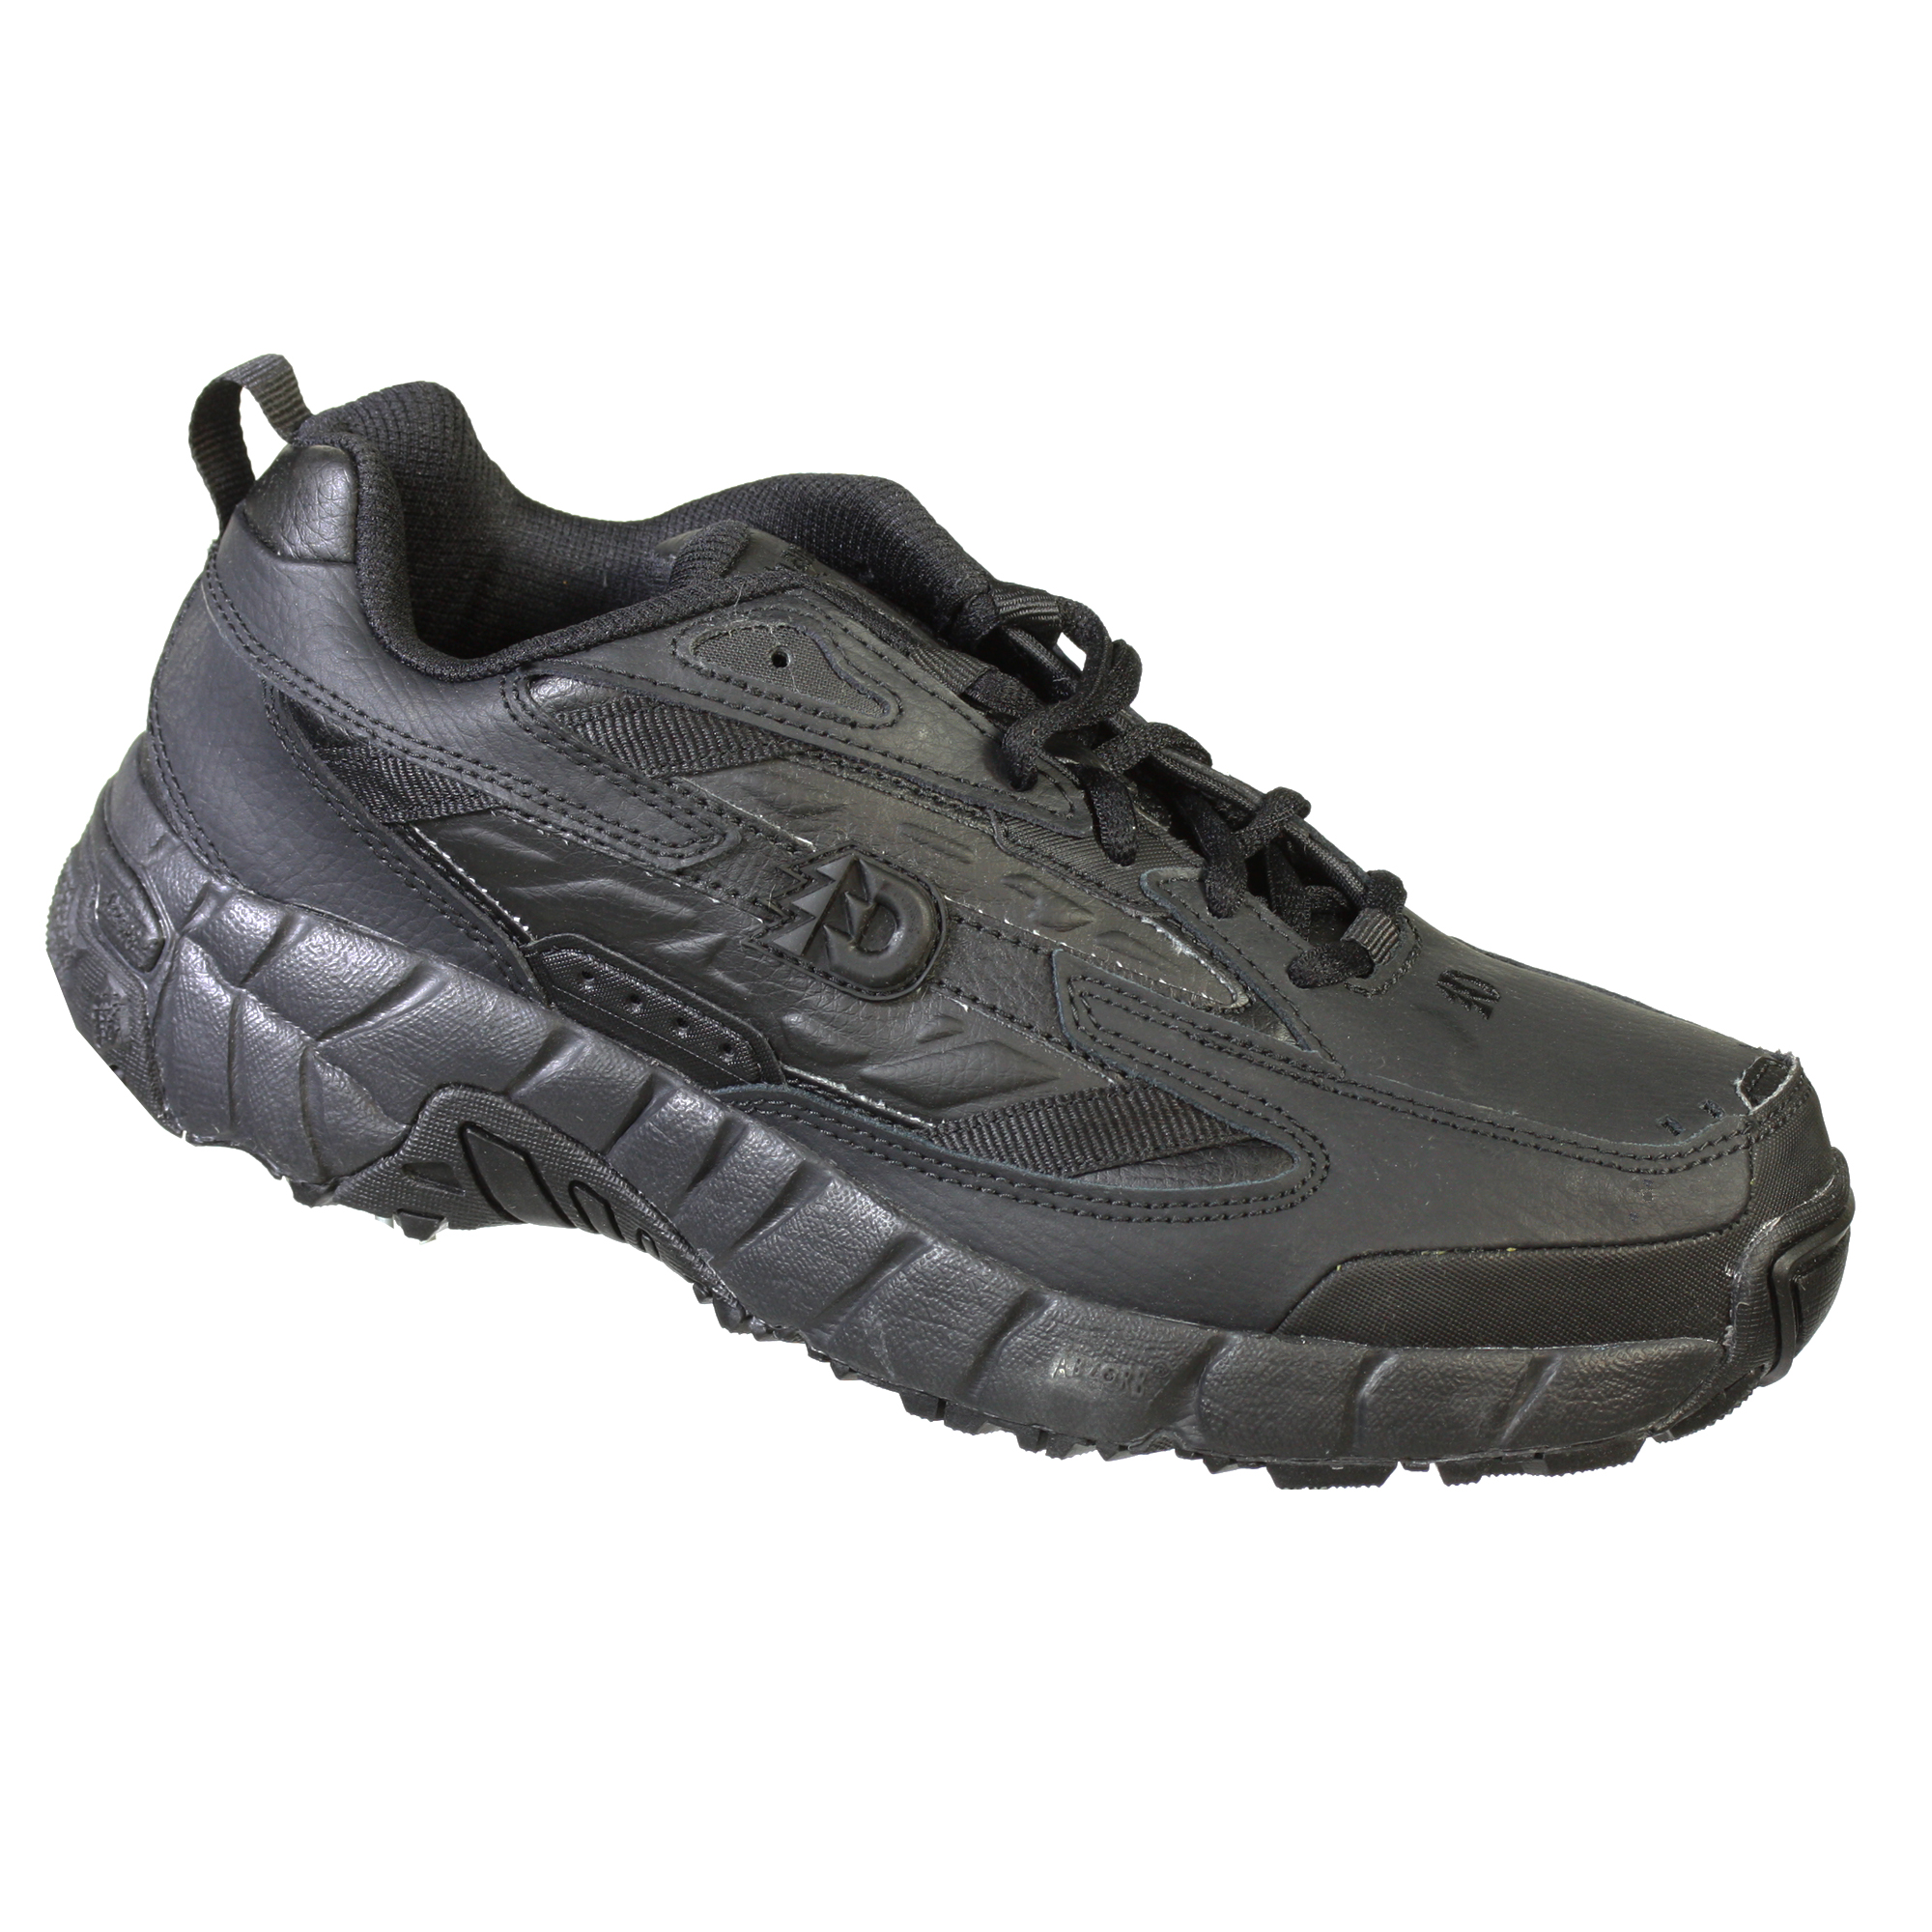 Dunham by New Balance DS664 Mens Steel Toe SDI Athletic Shoes Black 7 EE by Dunham